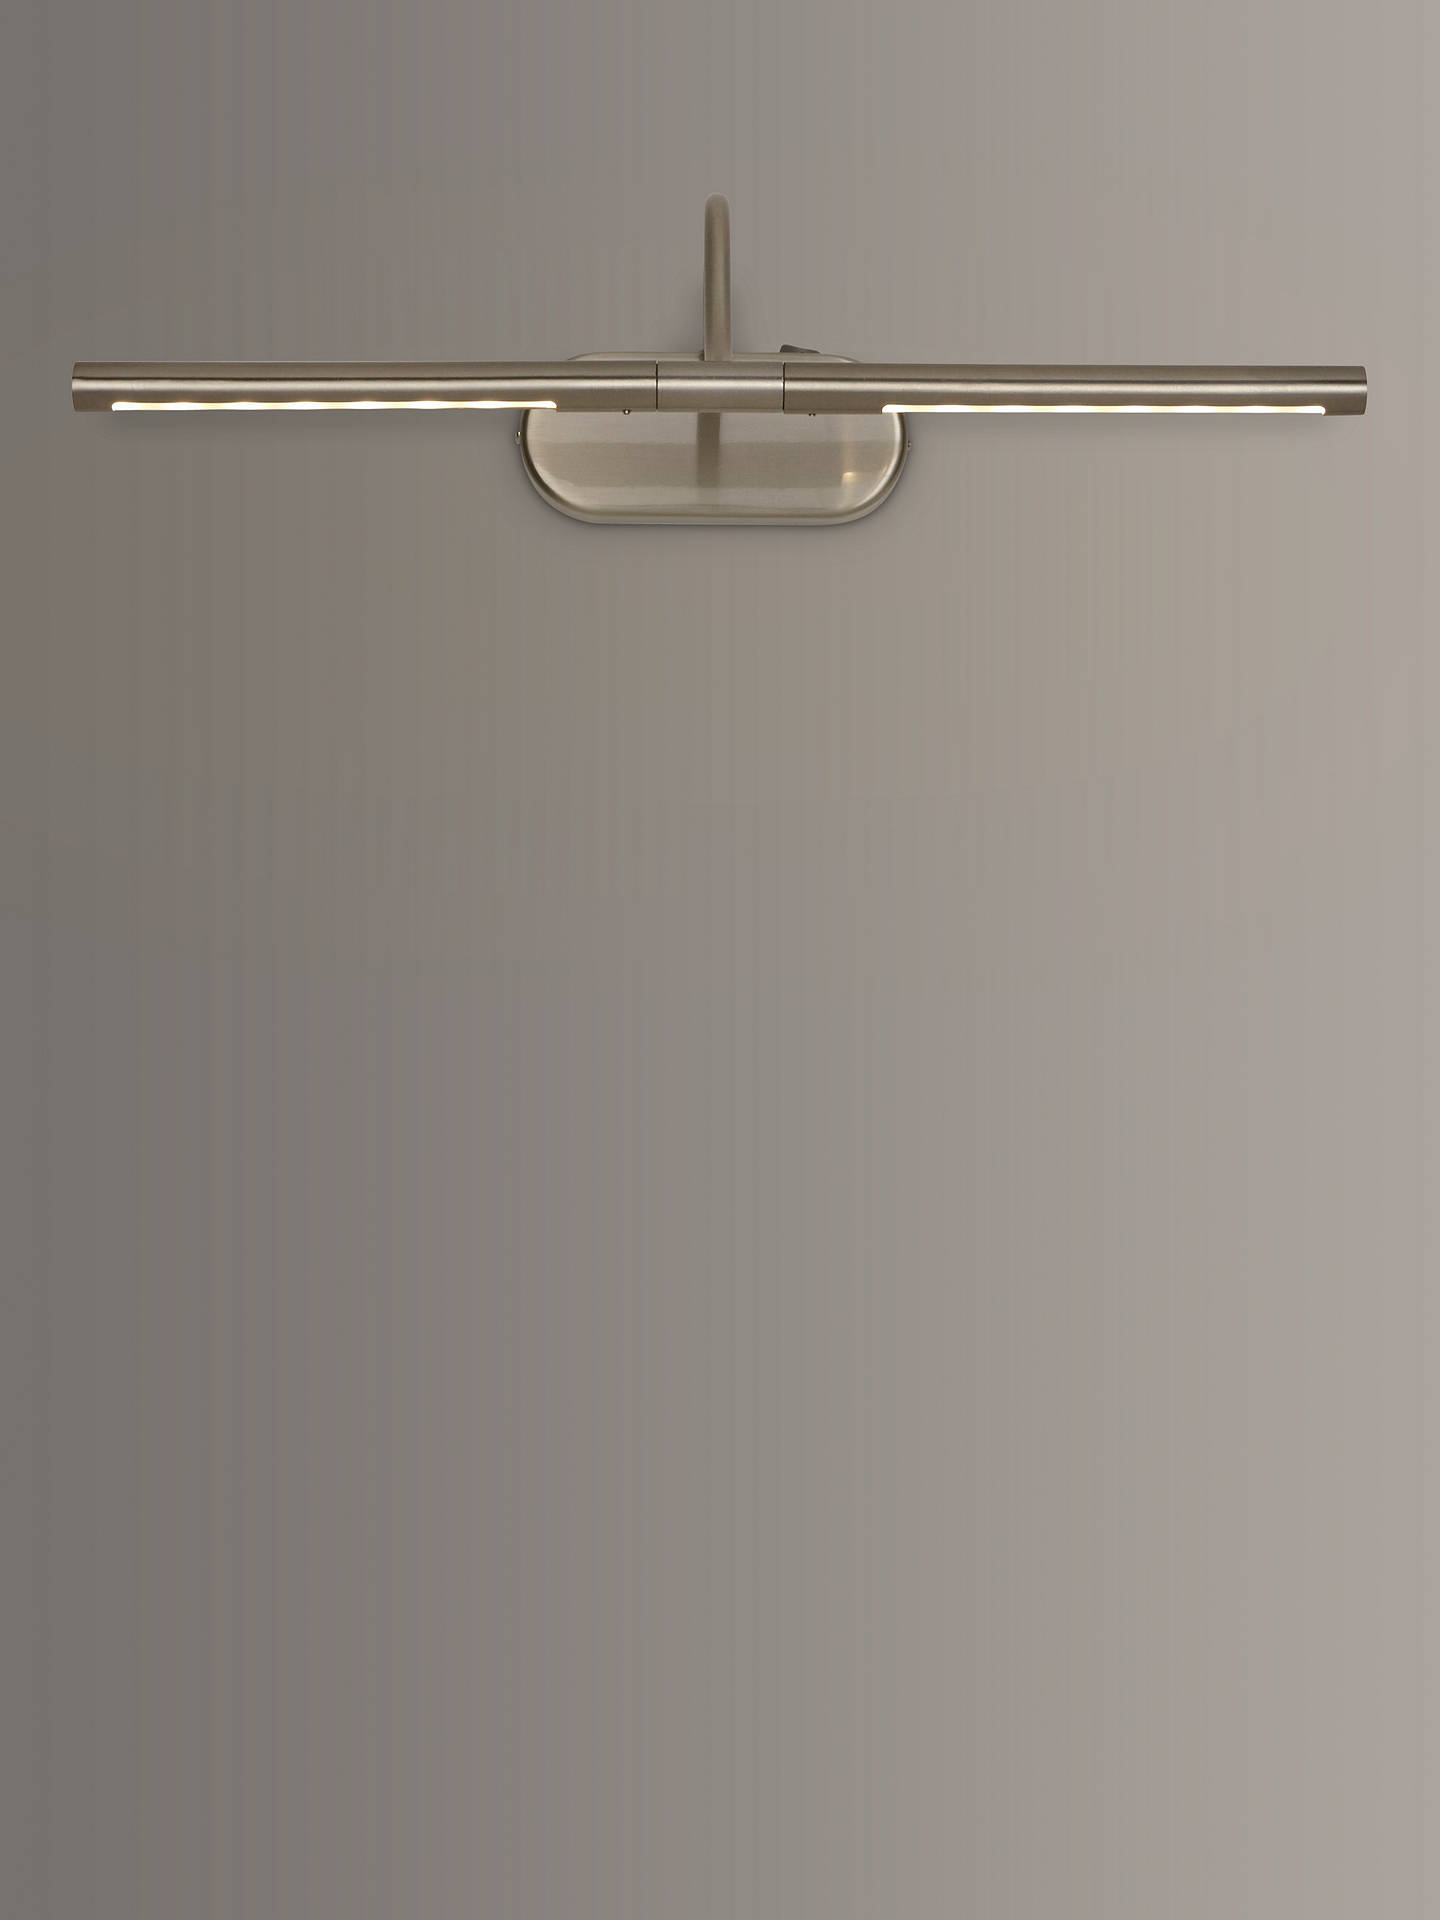 Buy John Lewis & Partners Litho LED Wall Light, Satin Nickel Online at johnlewis.com